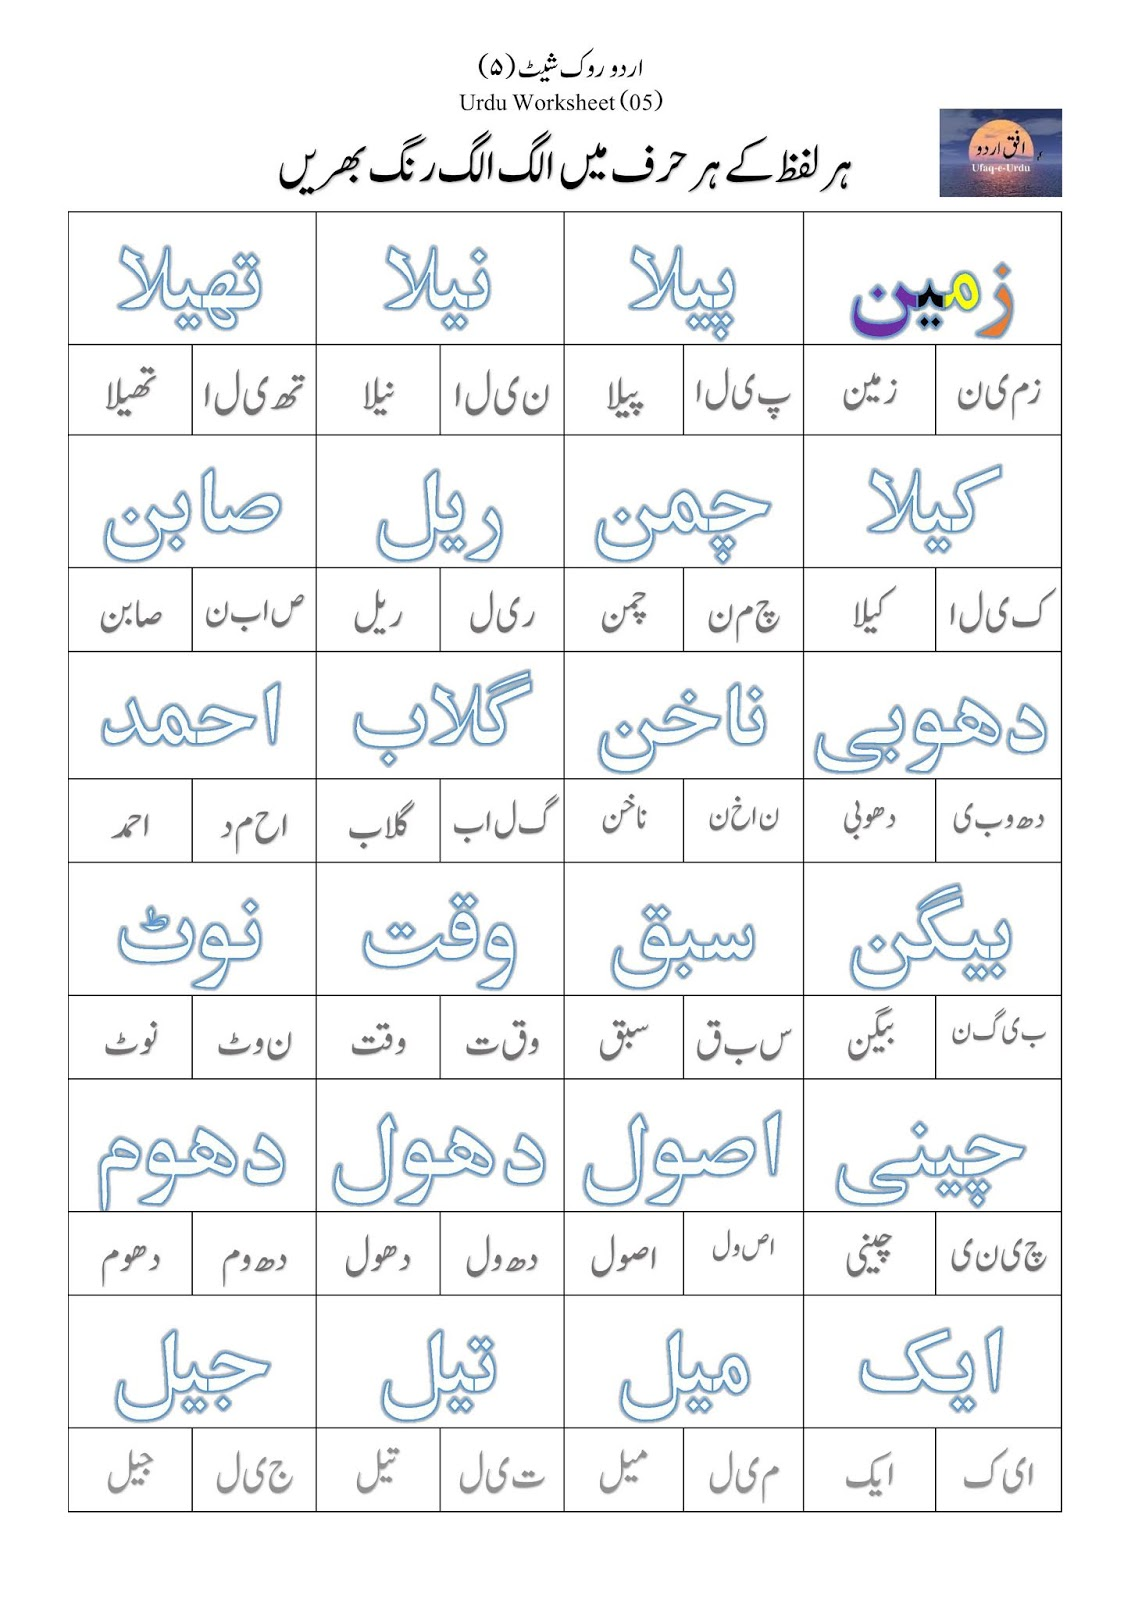 Urdu Worksheet 5